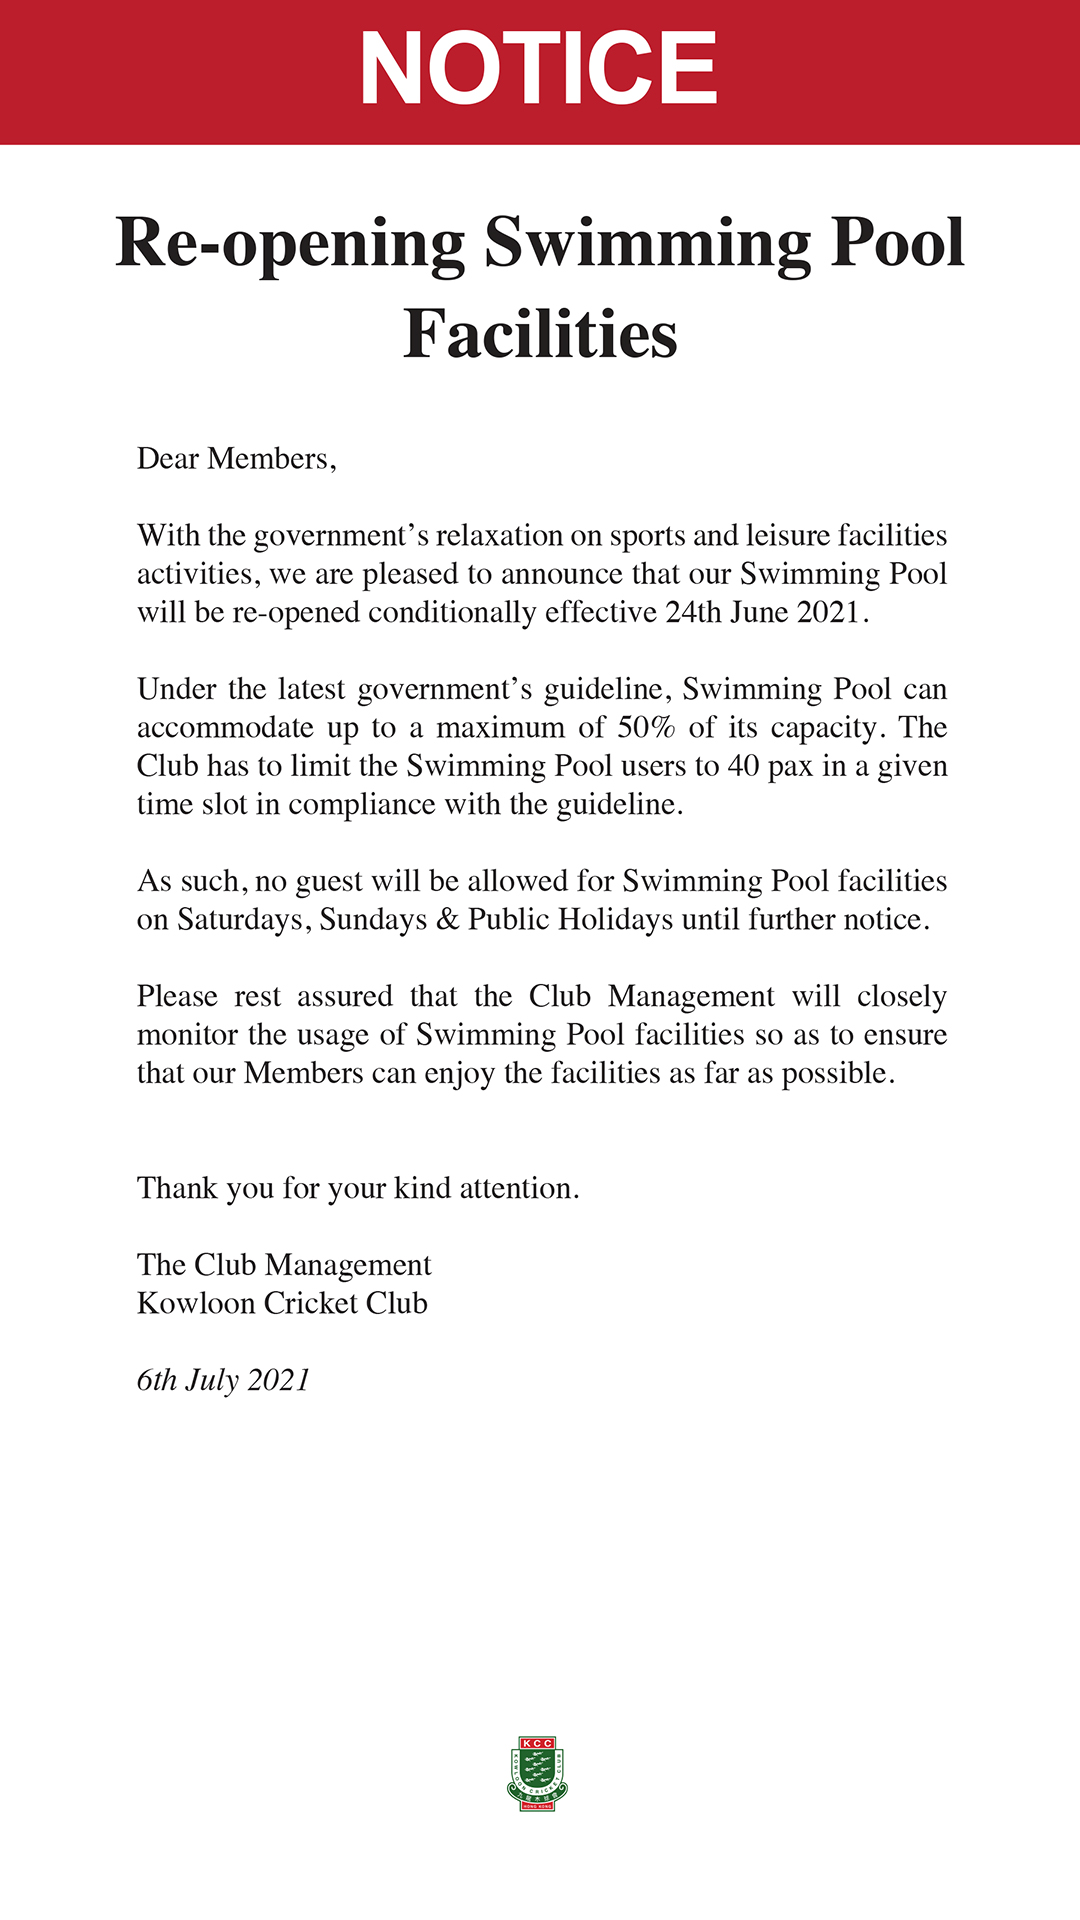 202107-Re-opening Swimming Pool Facilities-ENB